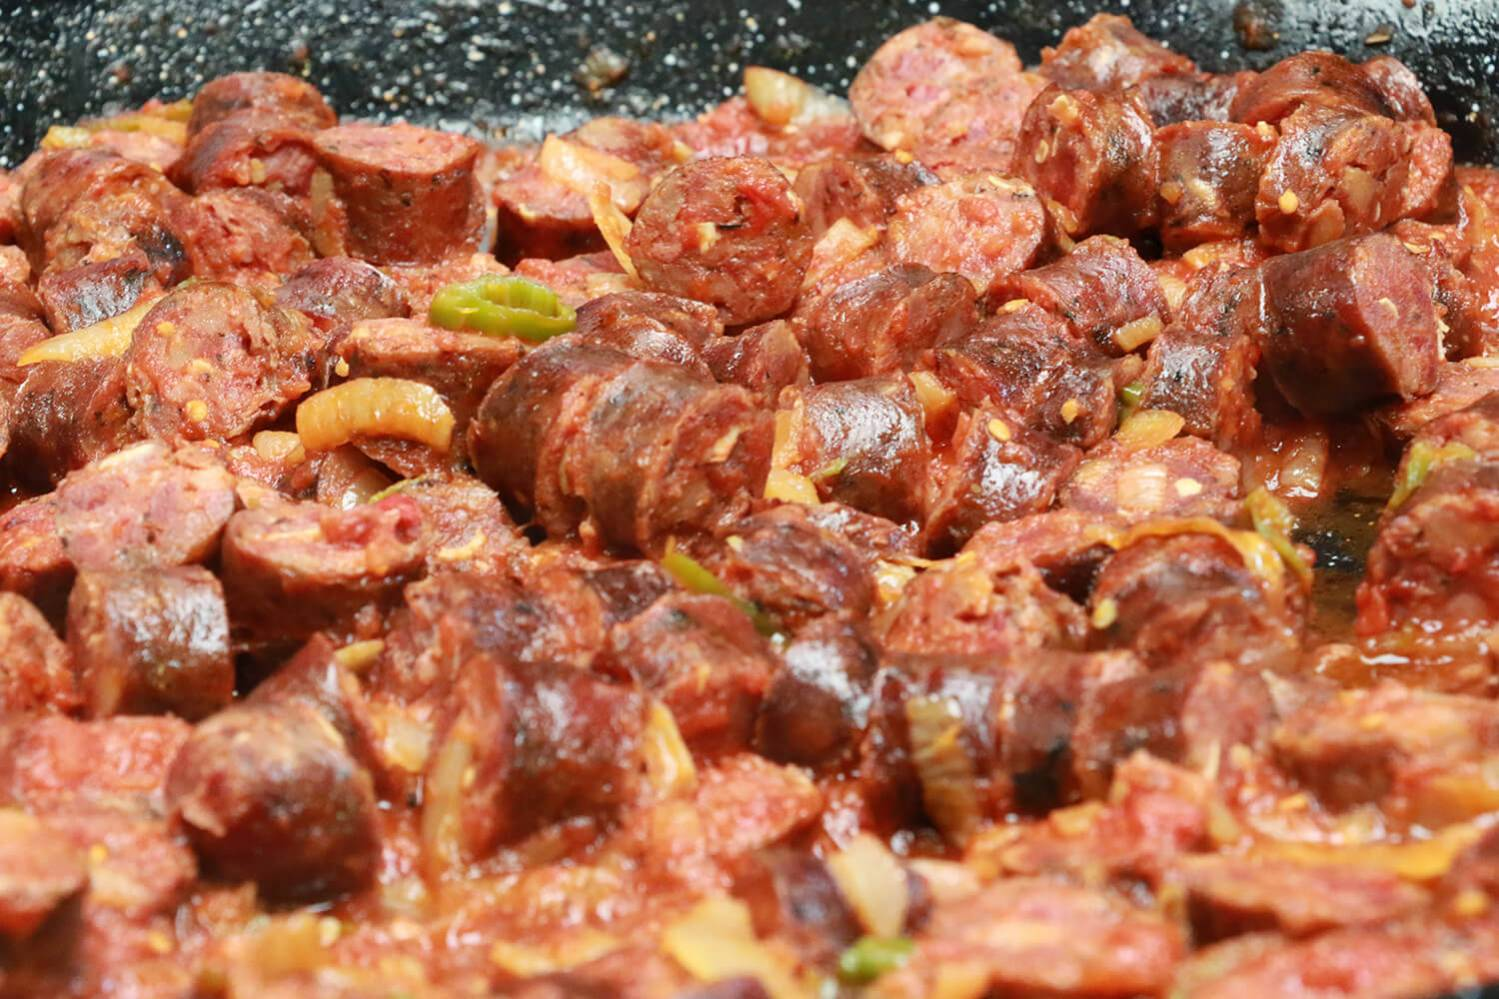 Rougail saucisse plat traditionnel de l'Ile de La Réunion 974